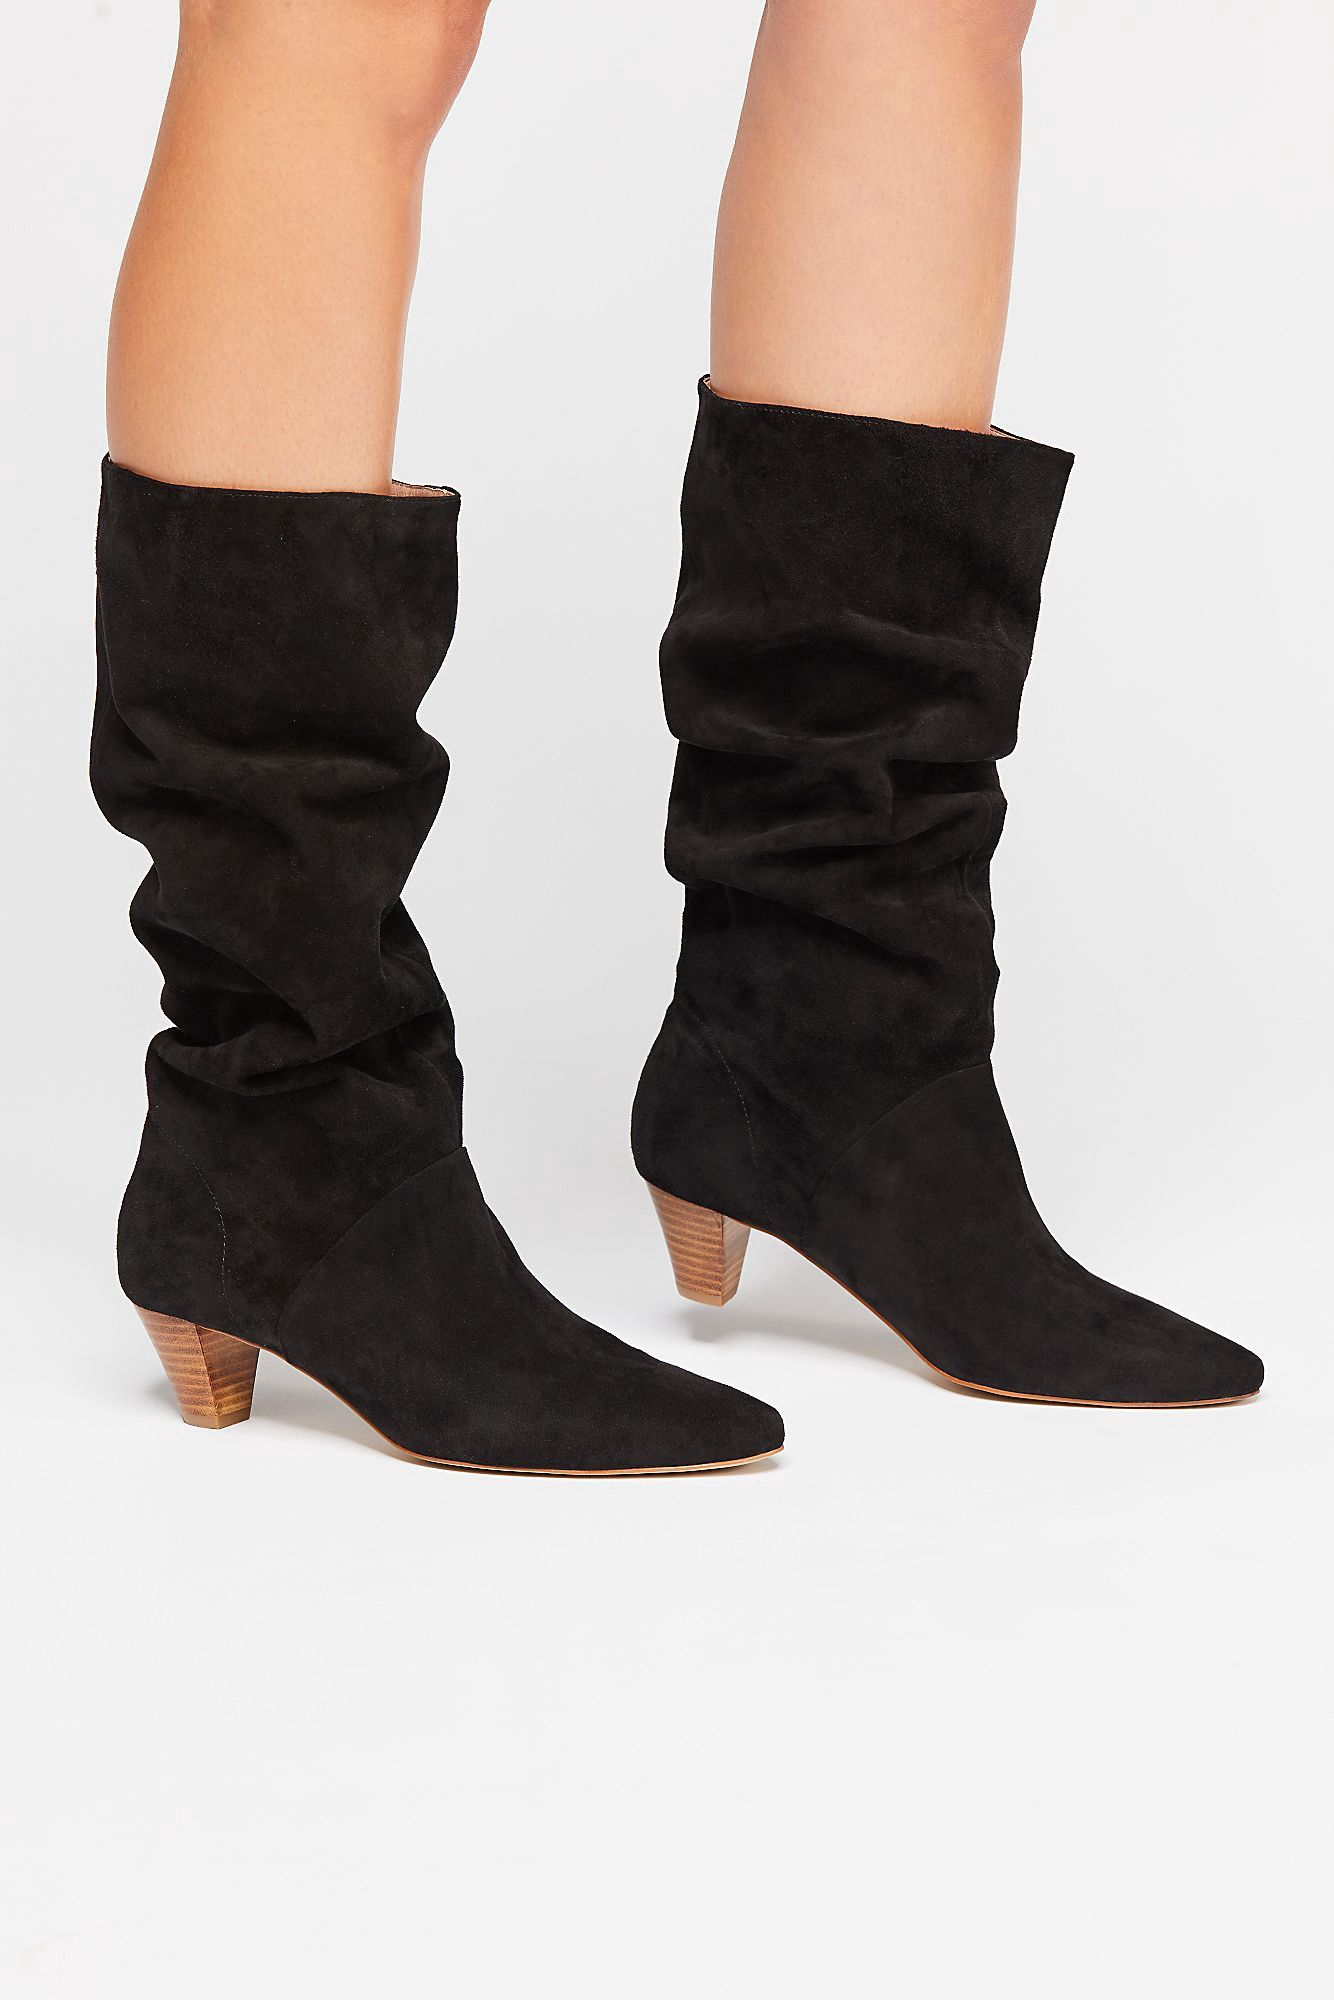 84610a3dea7 Free People Jaclyn Heel Boot - 36 Euro | Products | Boots, Bootie ...